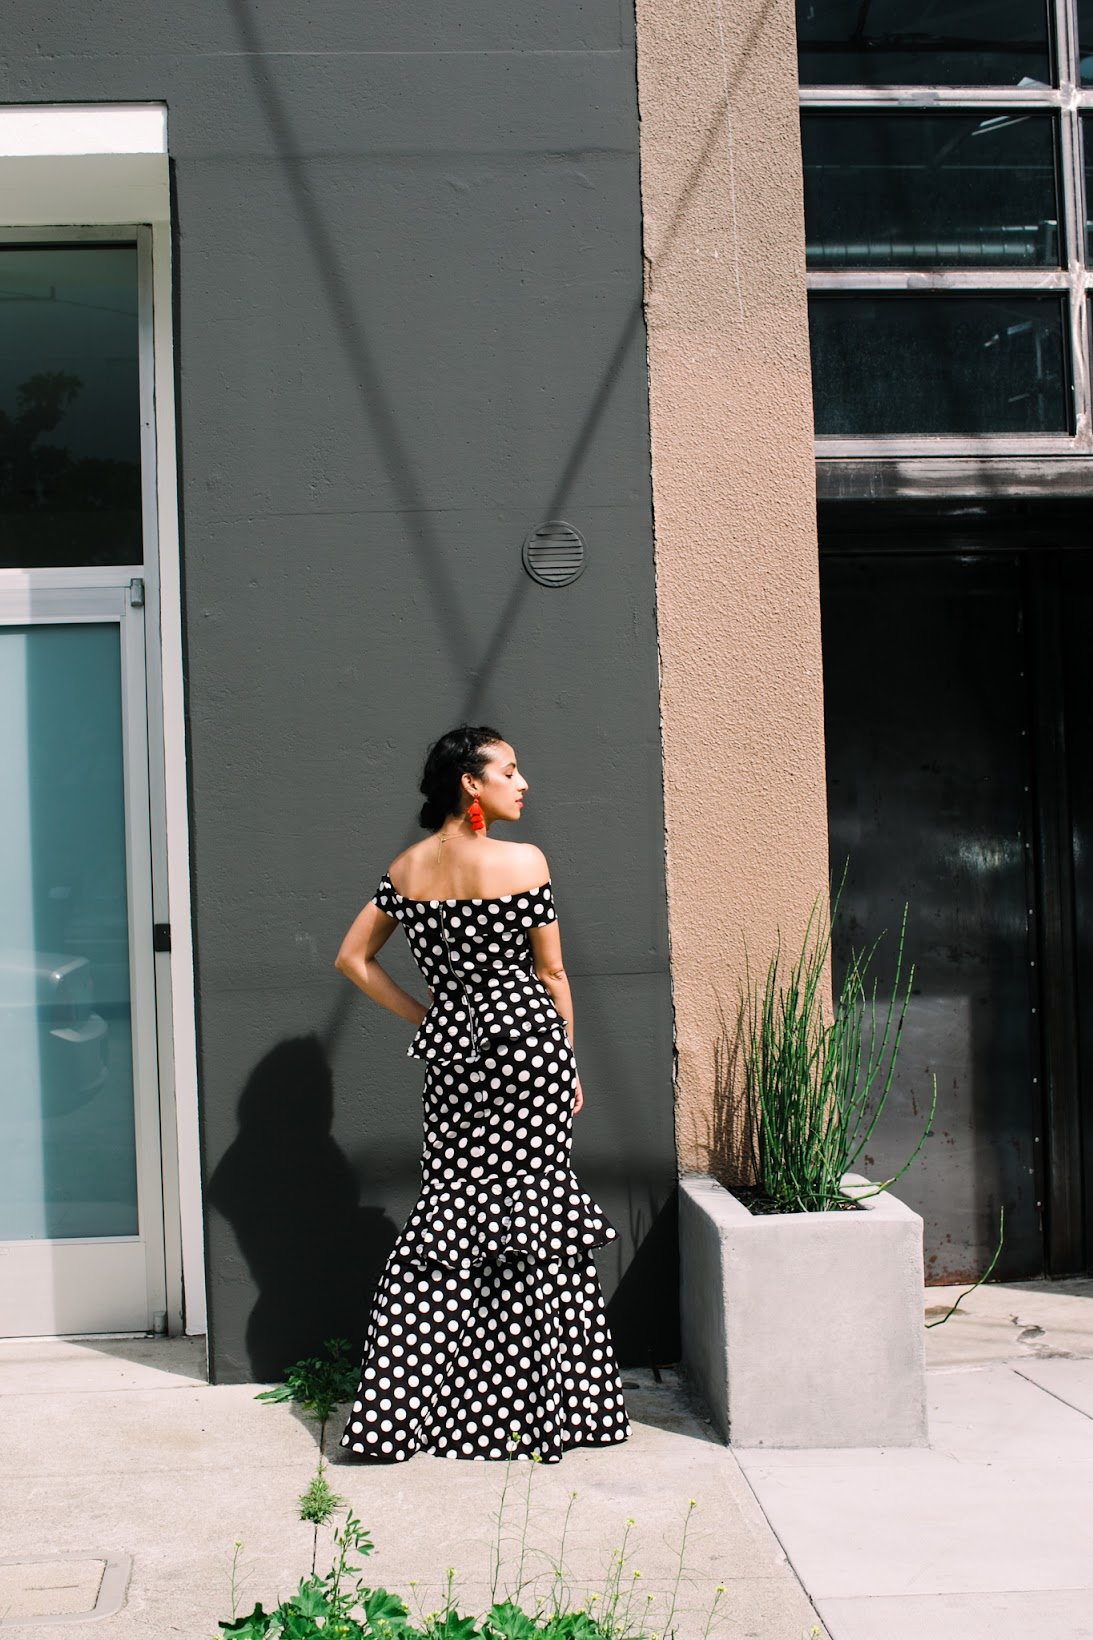 polka dot maxi dress, polka dot trend, polka dot ruffle maxi dress, black and white maxi dress, Vasic circle bag, red tassel earrings, spring style, san francisco style, how to wear polka dots